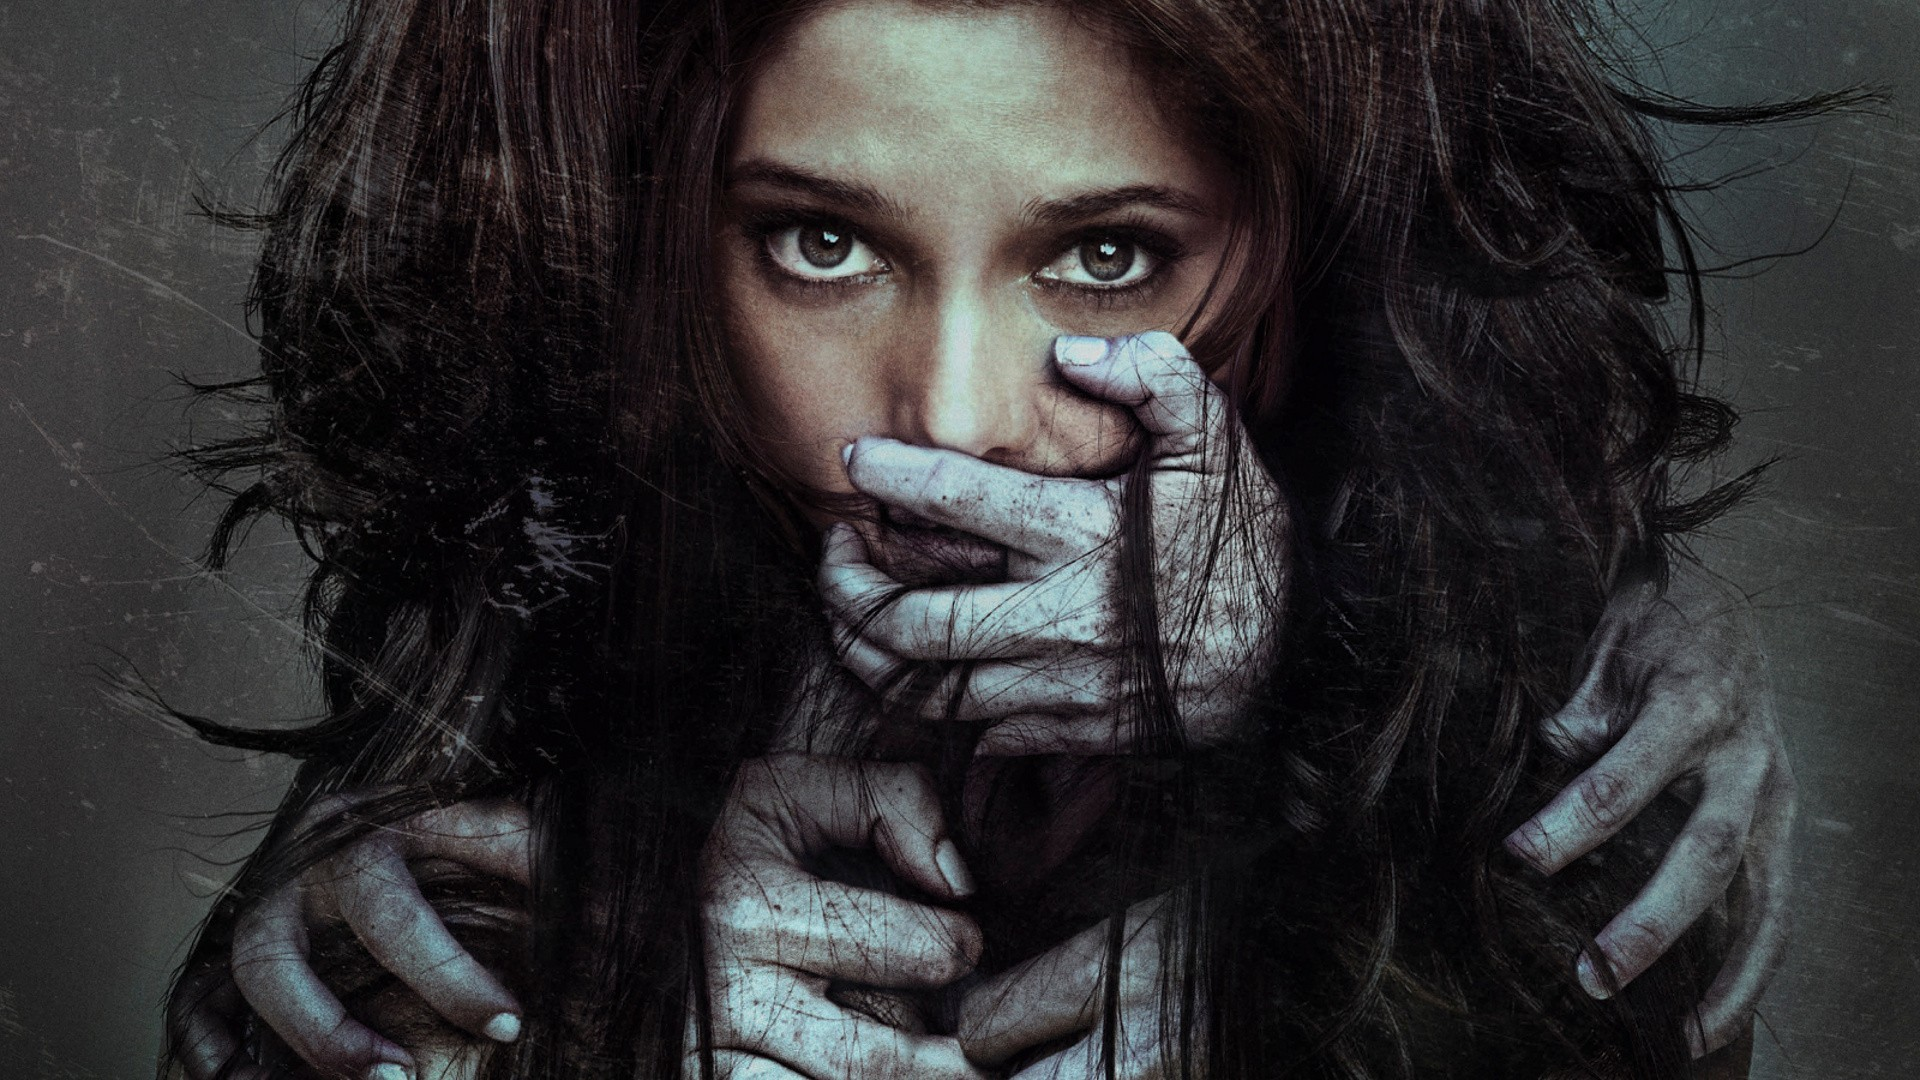 The Apparition Ashley Greene paranormal entertainment movies films dark  horror scary creepy spooky ghosts monsters creatures